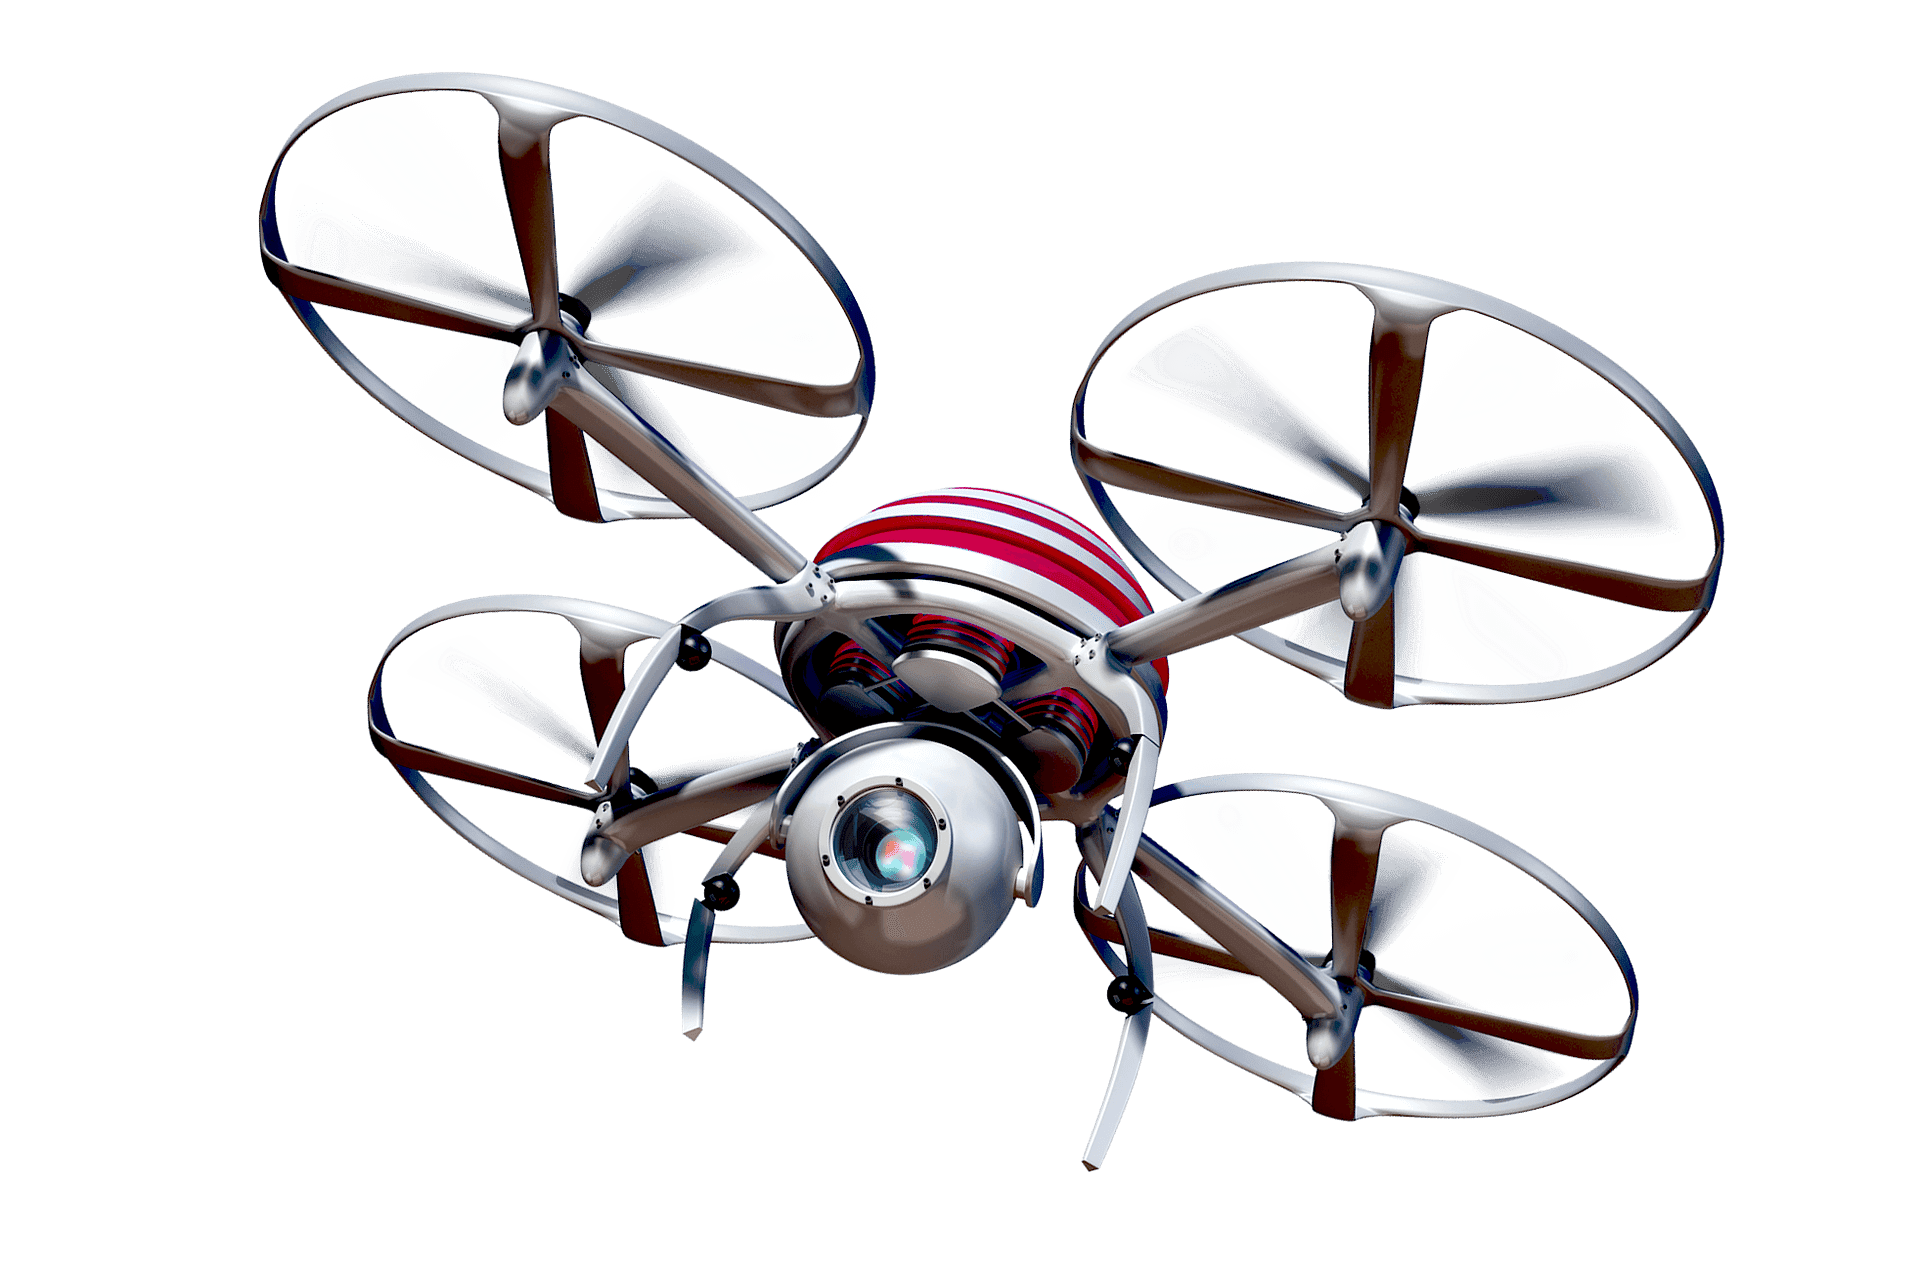 content/ru-ru/images/repository/isc/2020/a-spy-drone-with-large-camera-lens.png